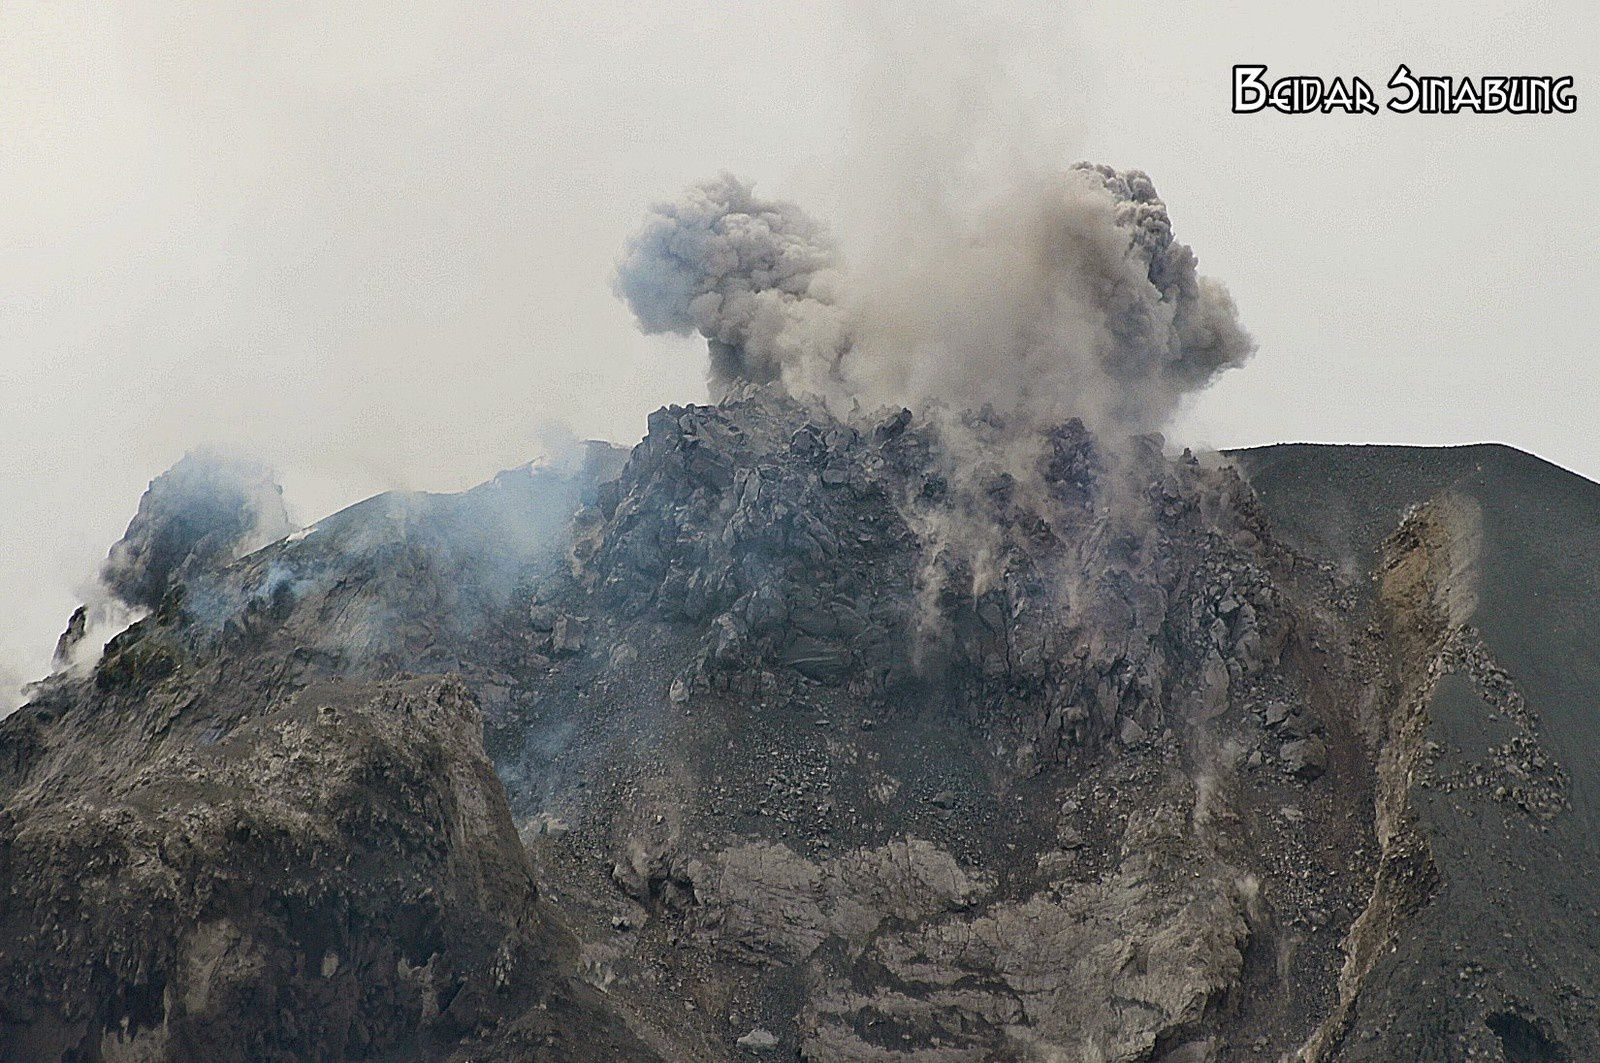 Sinabung - multiple ashventings and dome - photo Firdaus surbakti via Beidar Sinabung